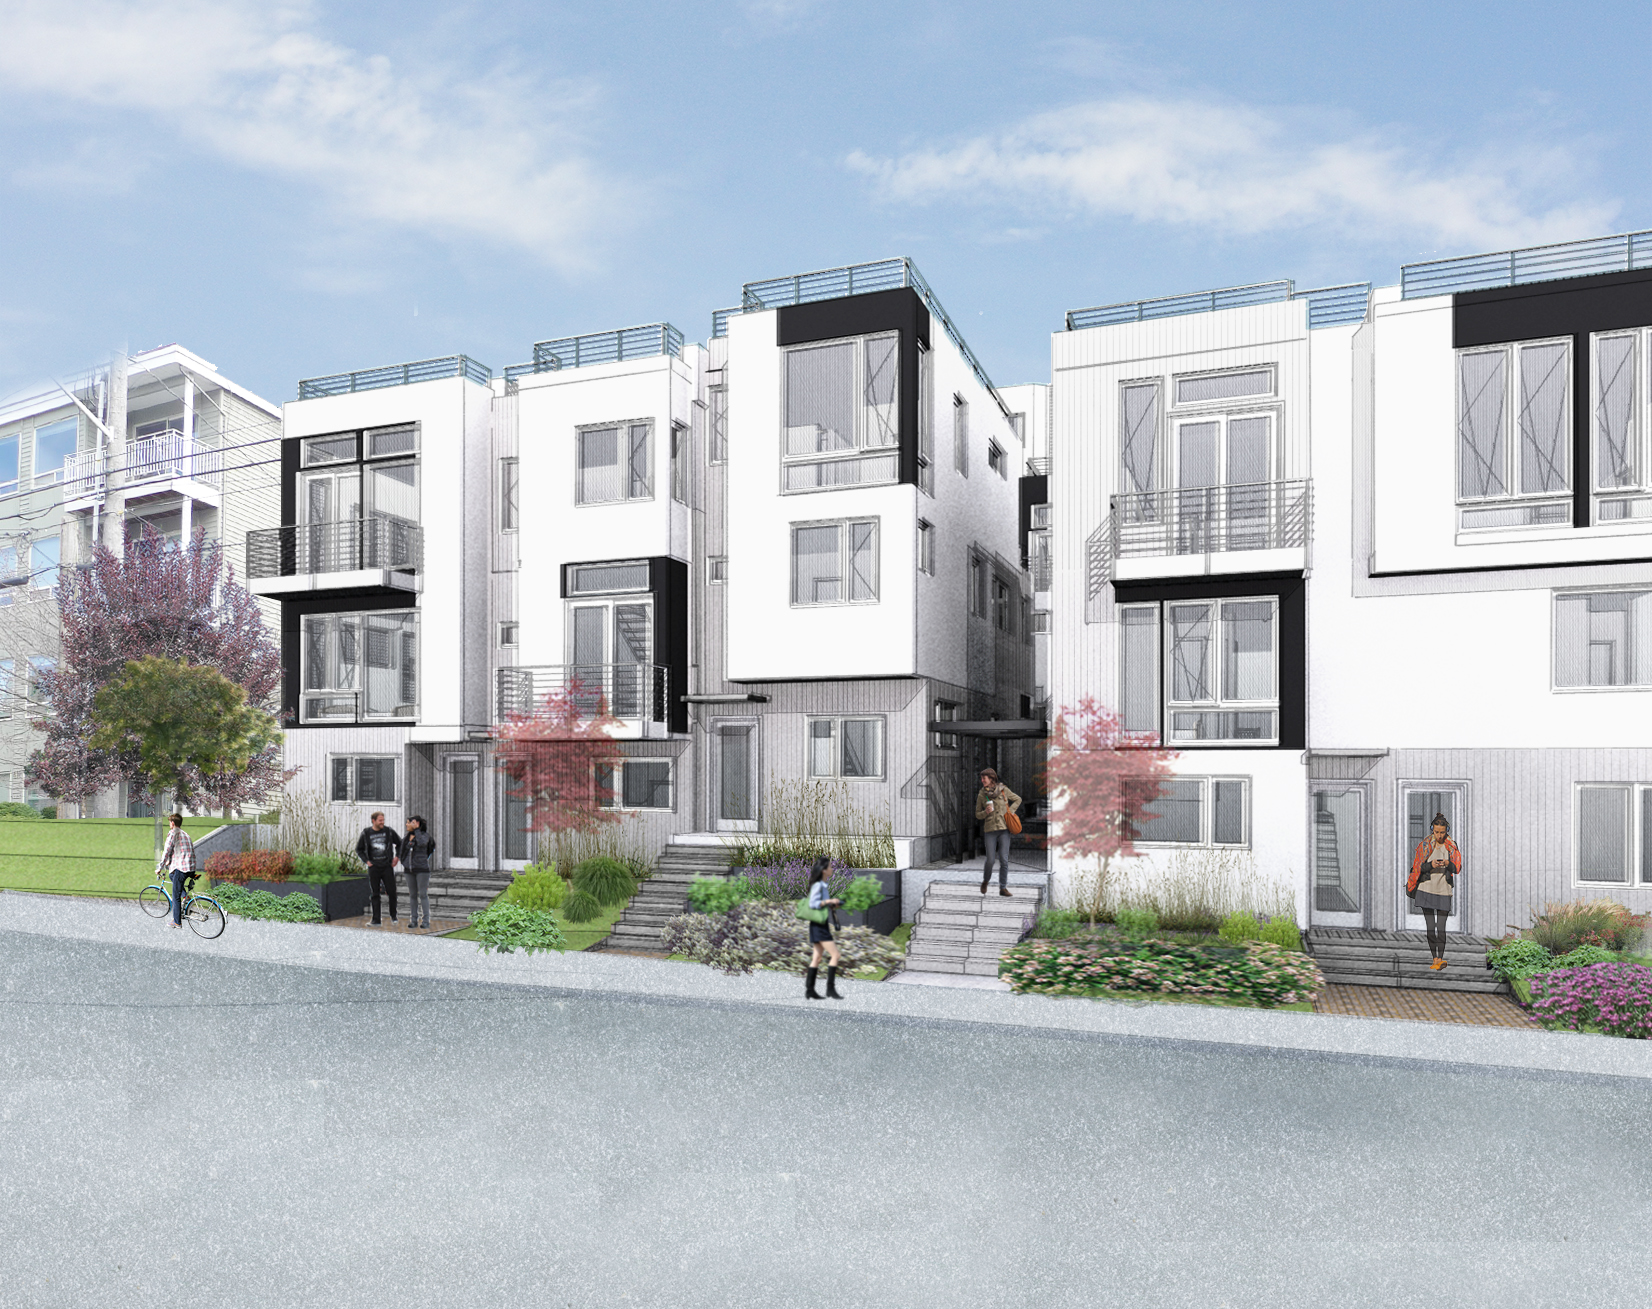 Rendering showing facade to come at 12th Ave E and E Harrison St